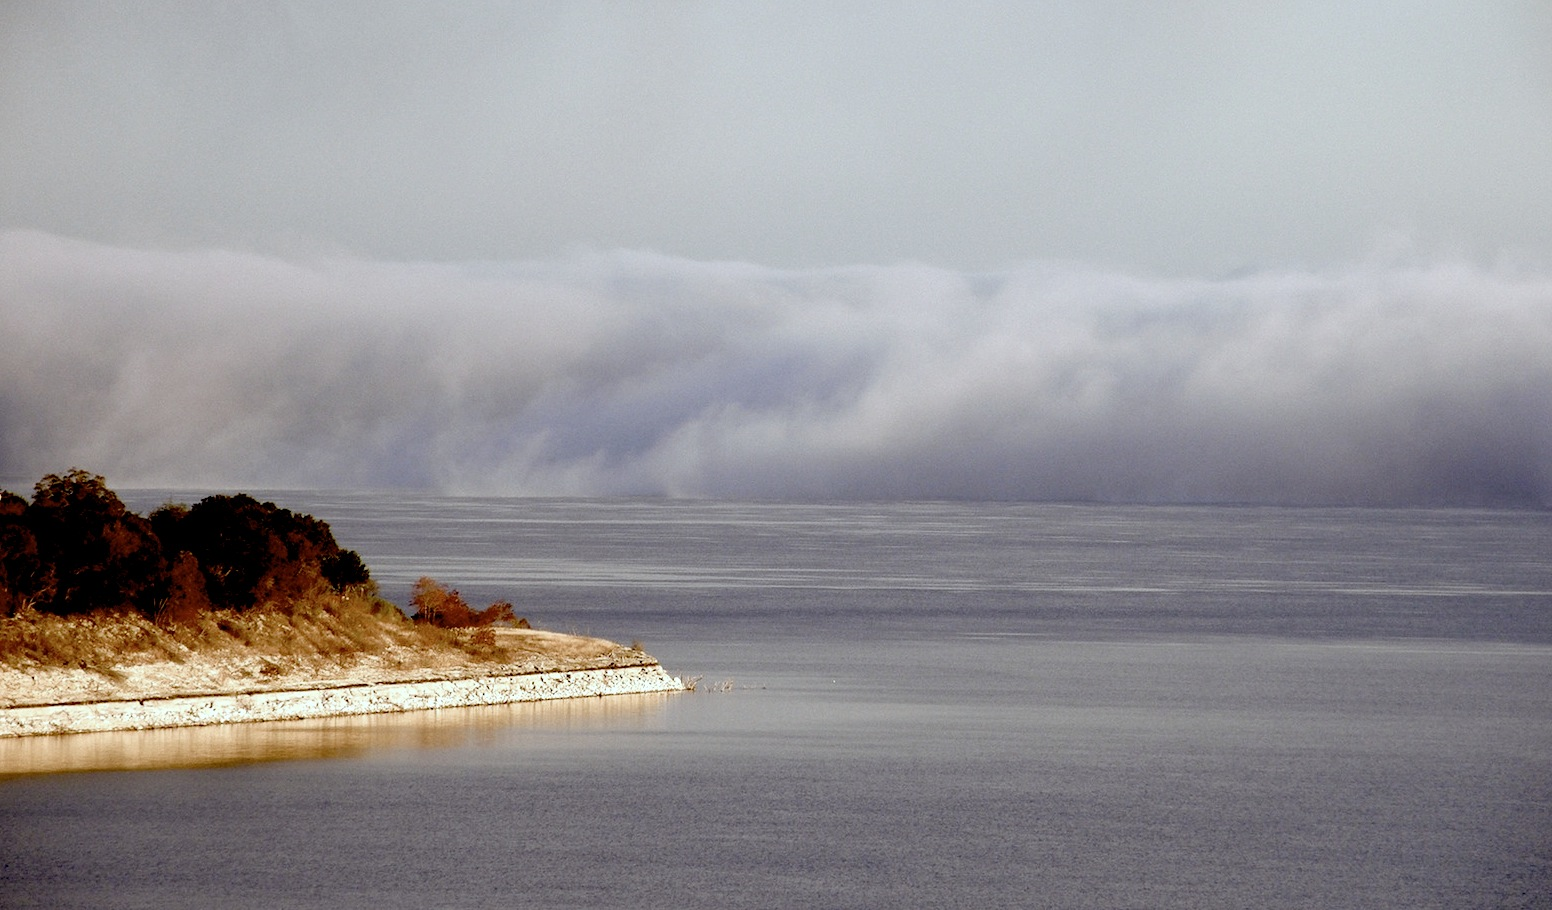 Fog Bank rolling in over the lake